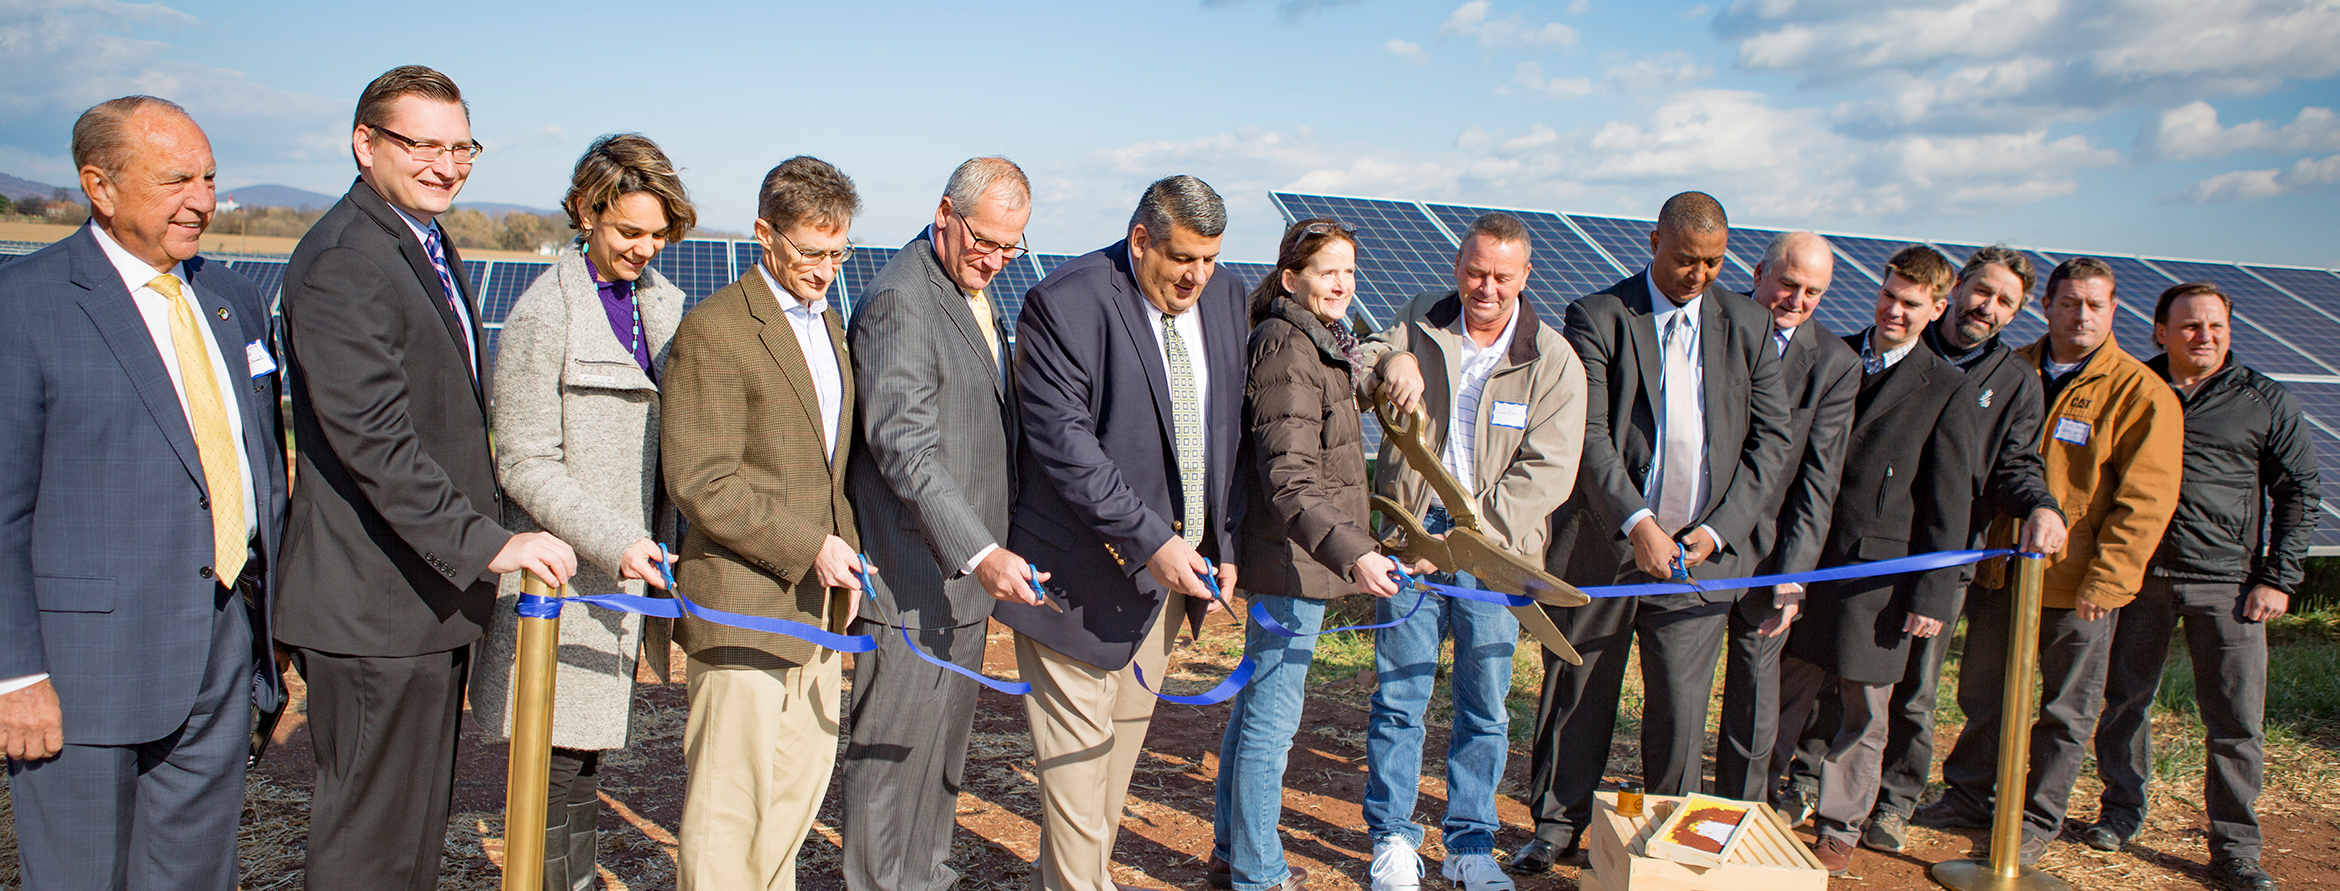 Baker-Point-Solar-Farm-Ribbon-Cutting-H.jpg